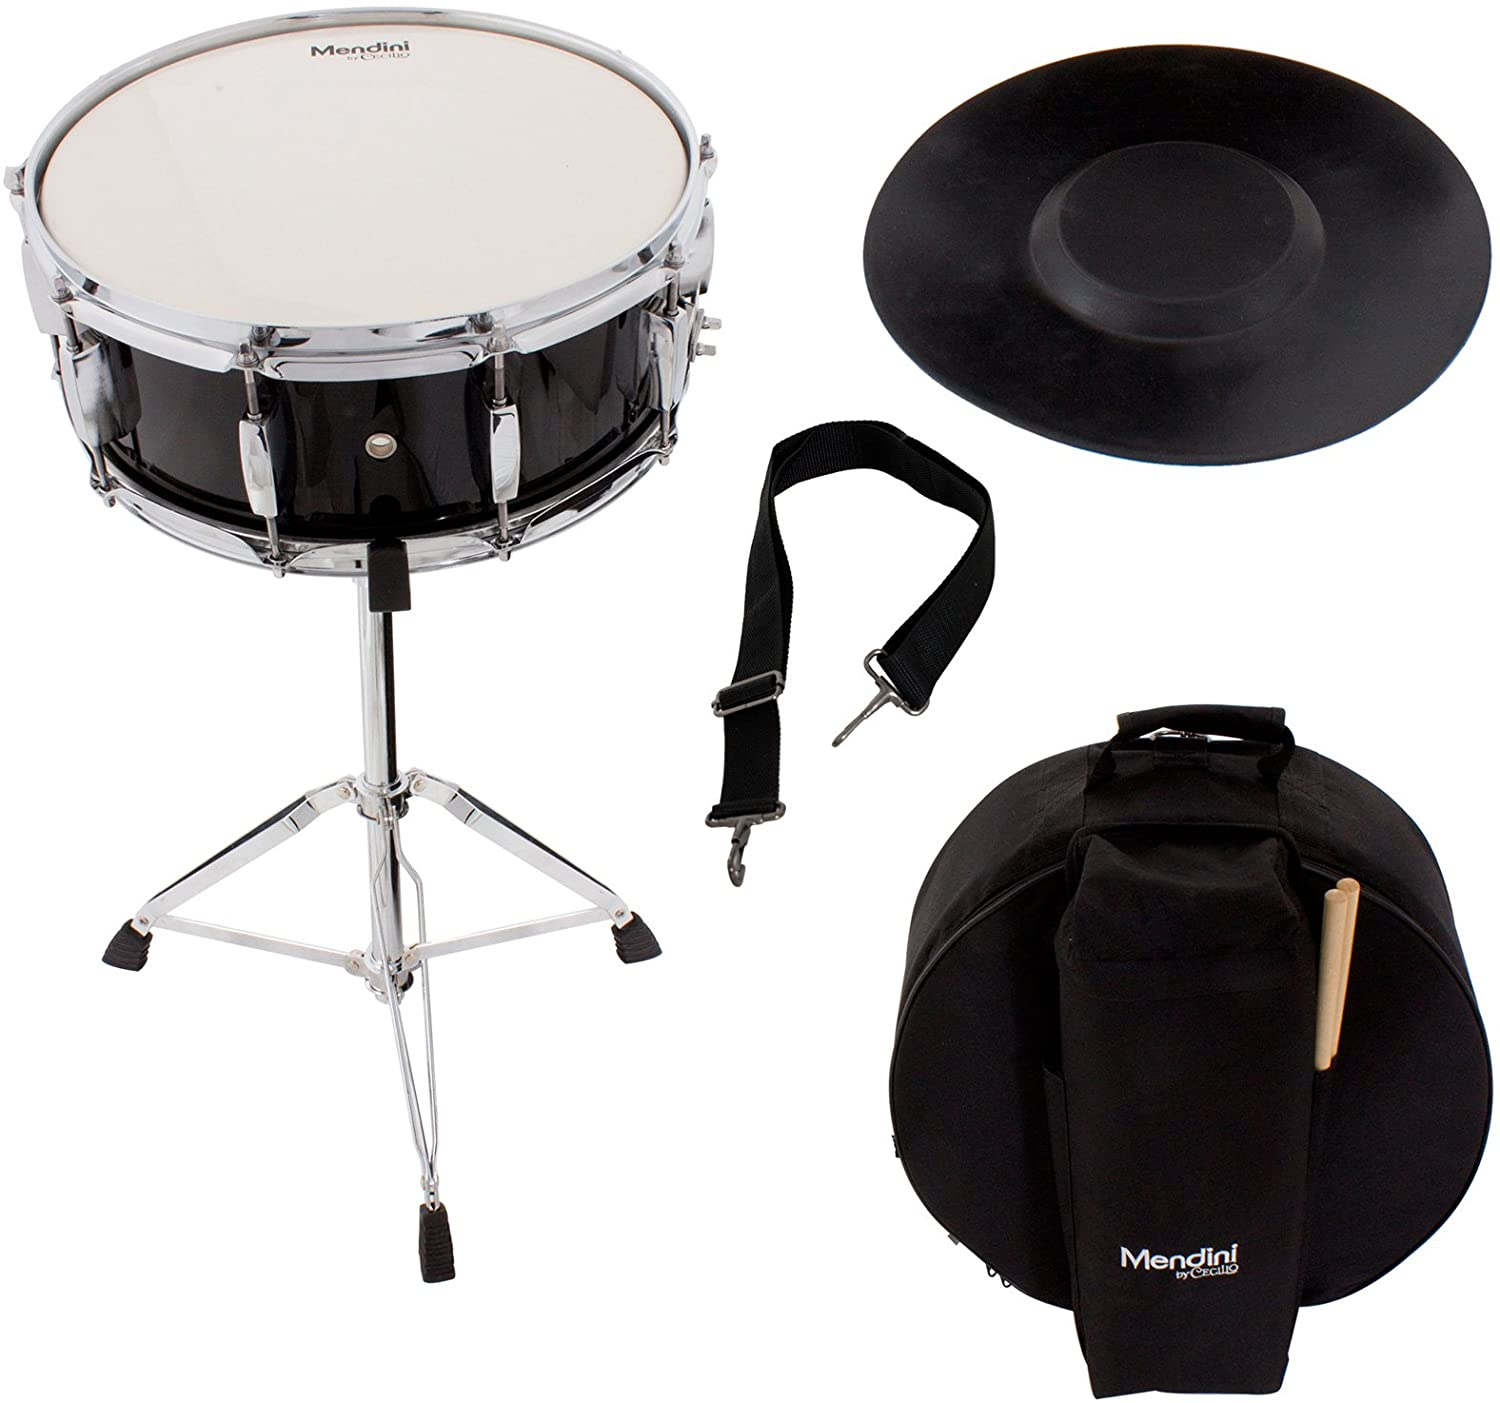 Mendini Student Snare Drum Set with Gig Bag | Drums For Beginner